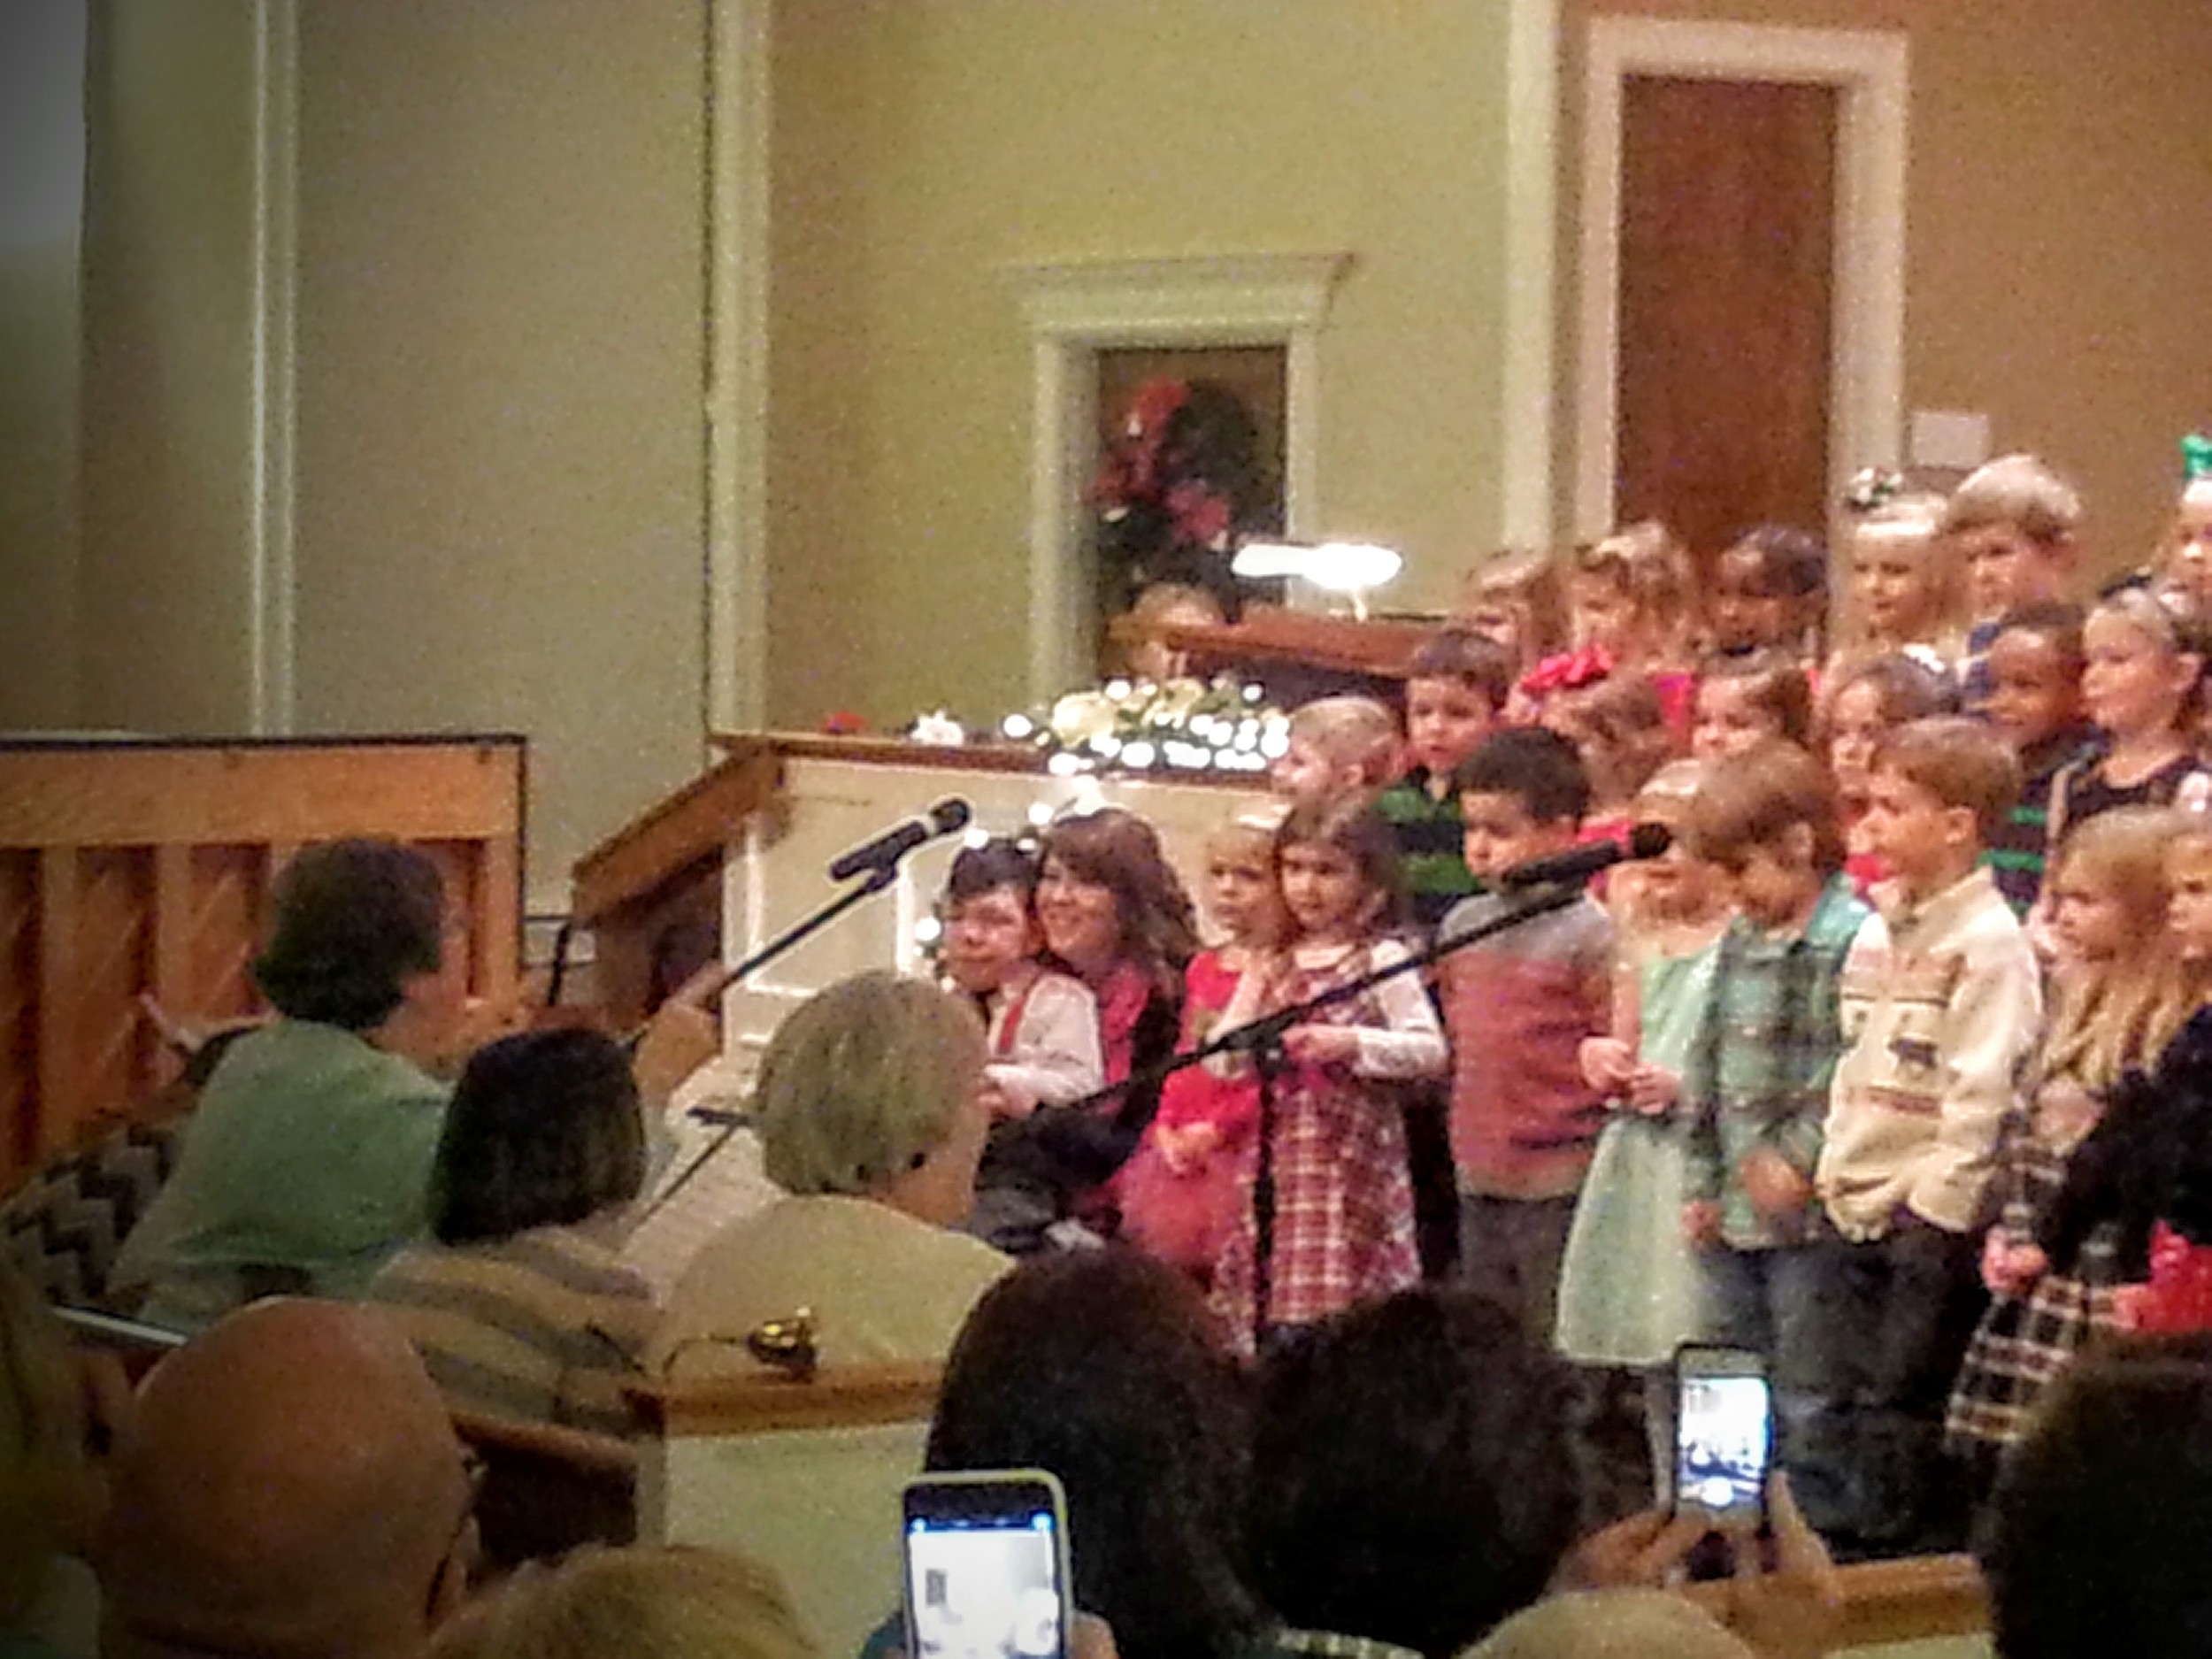 Christmas program 2: red suspenders and tie.